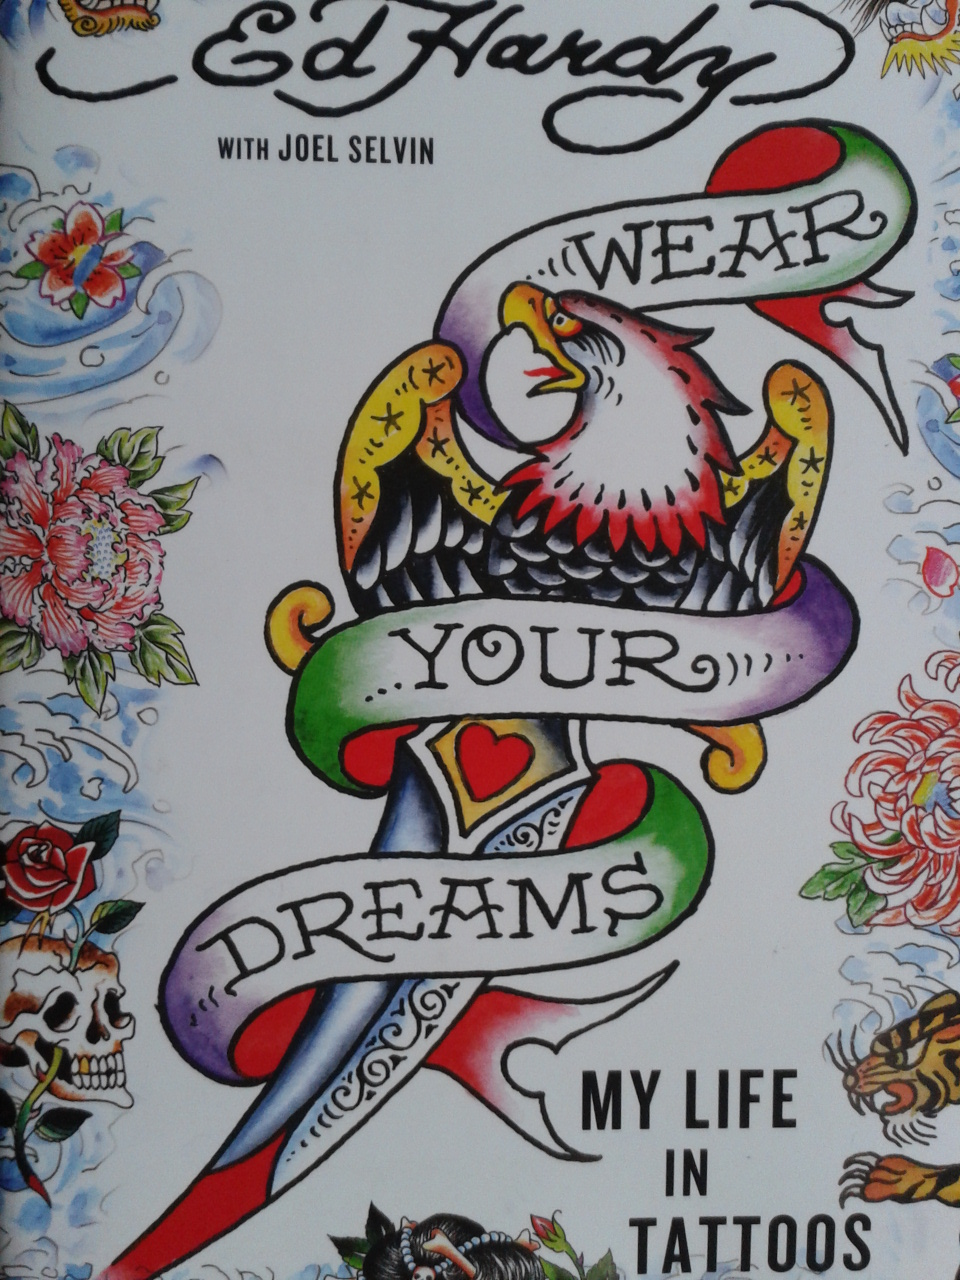 book review don ed hardy wear your dreams my life in tattoos aniareads weblog. Black Bedroom Furniture Sets. Home Design Ideas